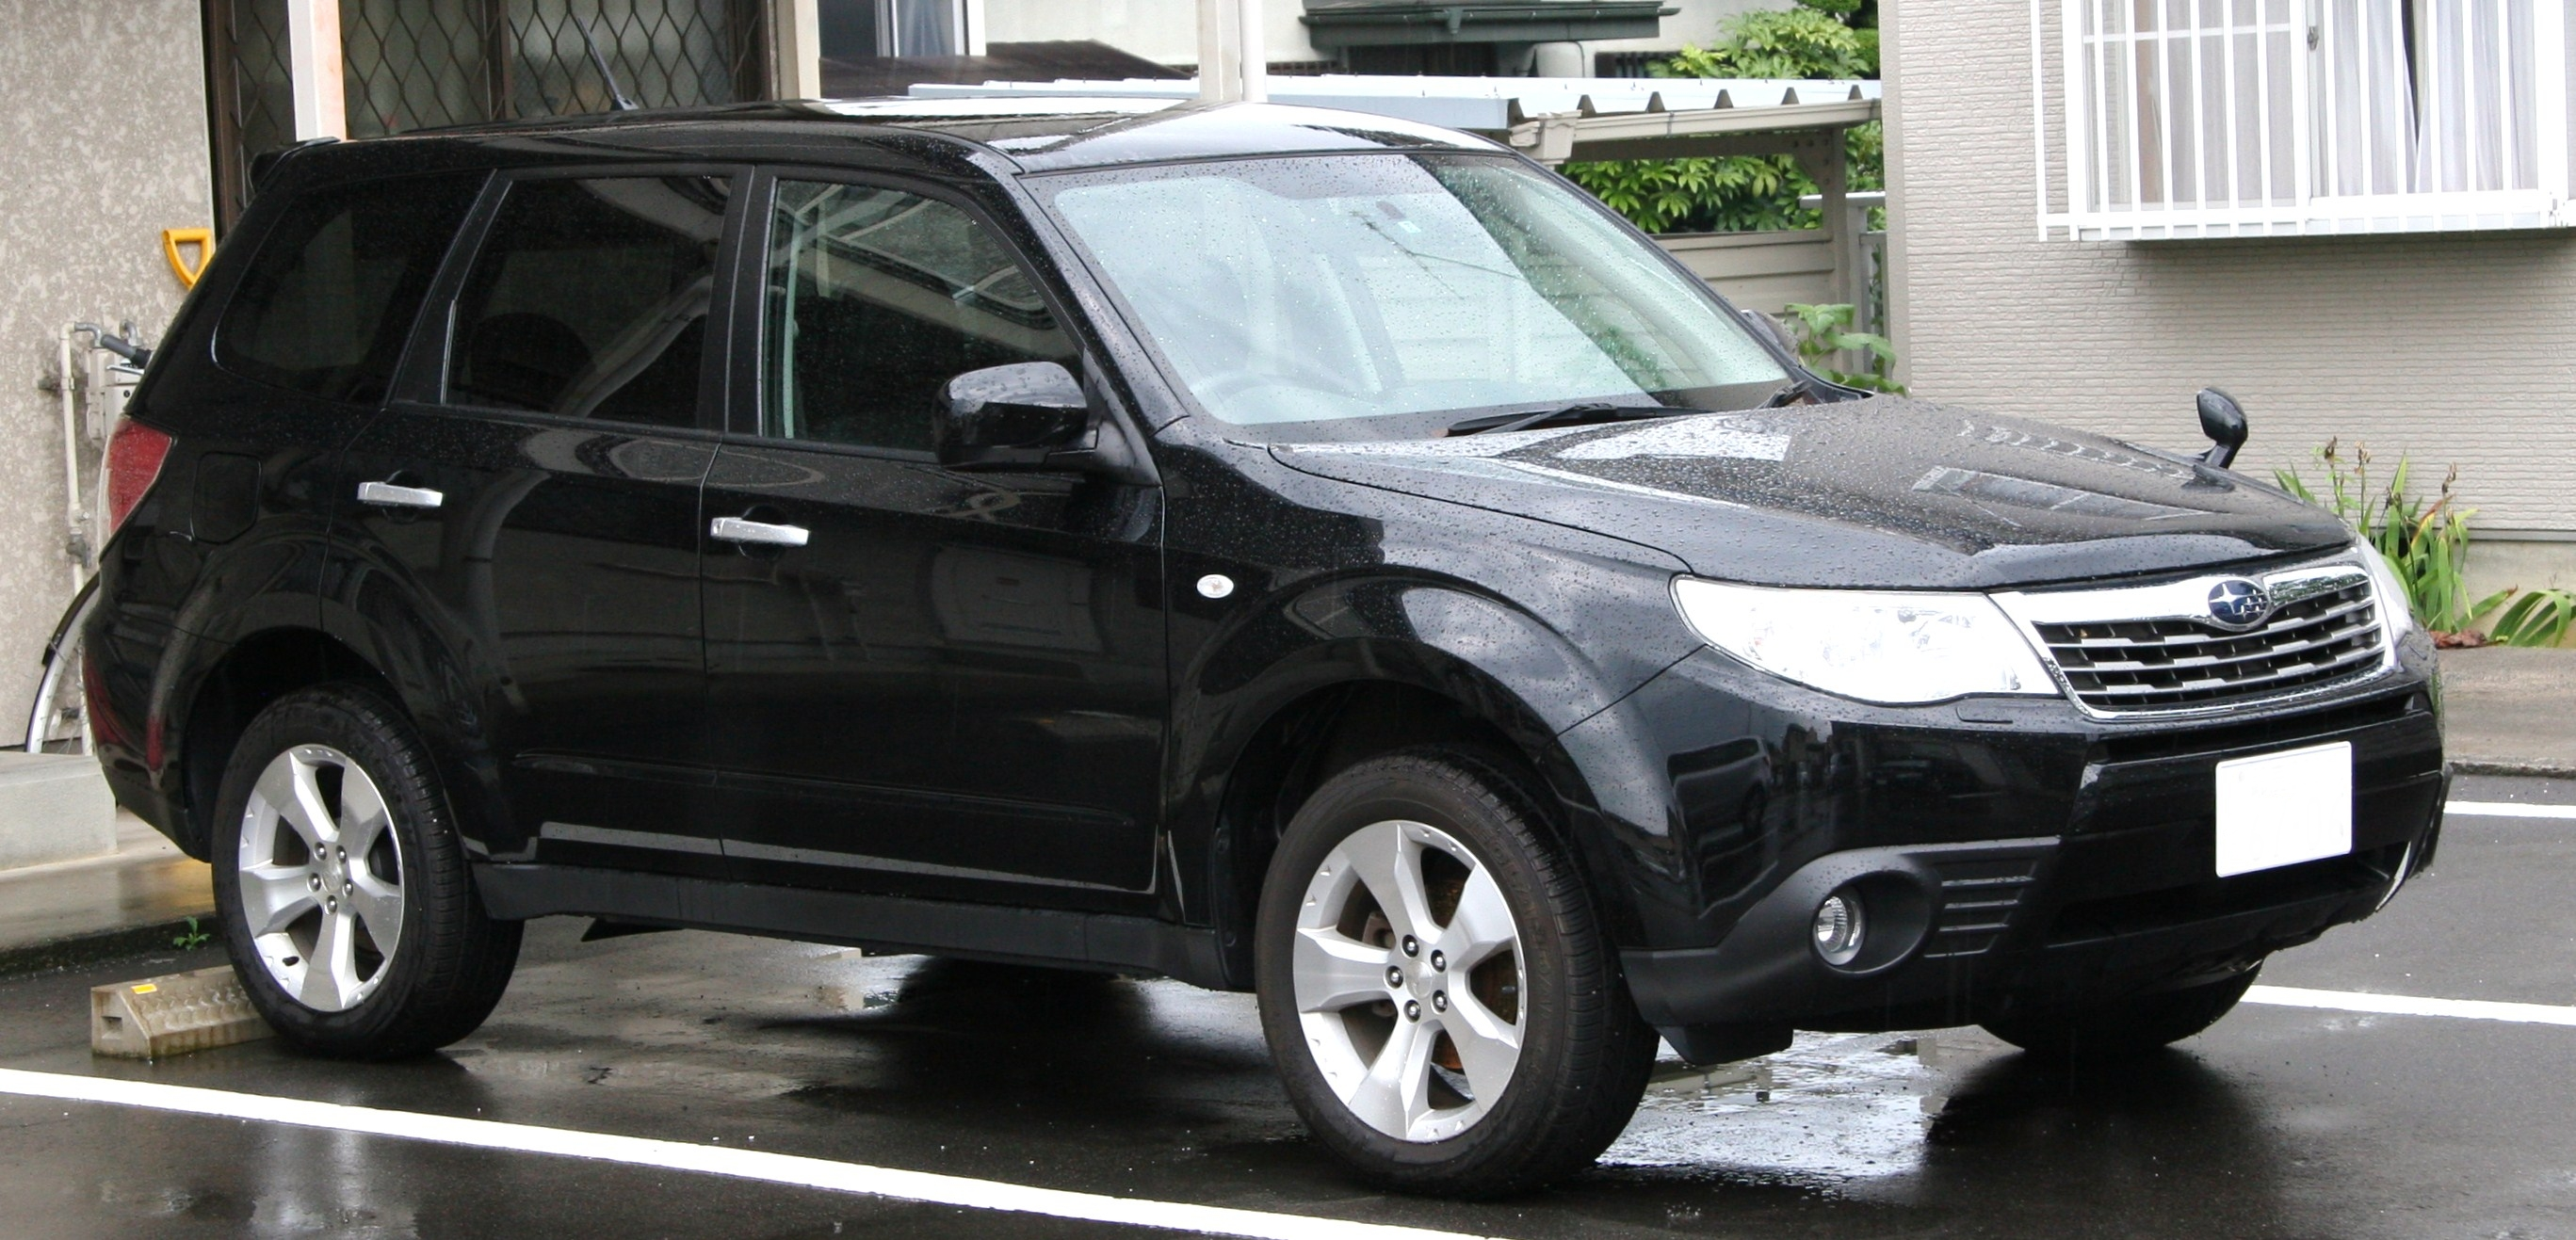 File Subaru Forester Sh Jpg Wikimedia Commons